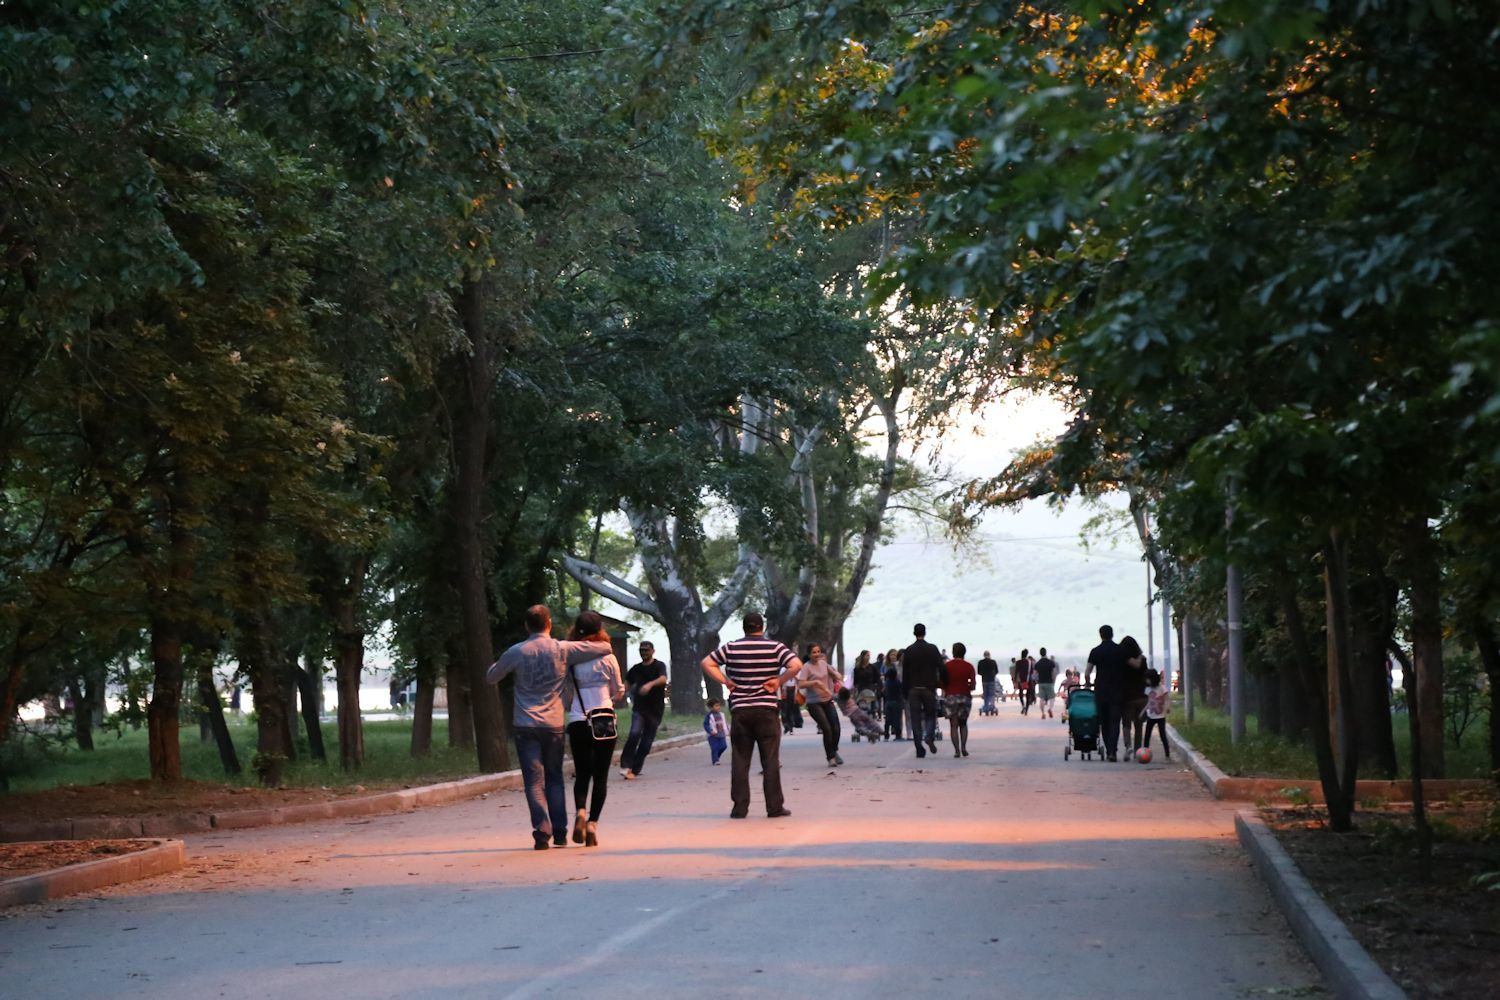 Walking area at Lisi lake